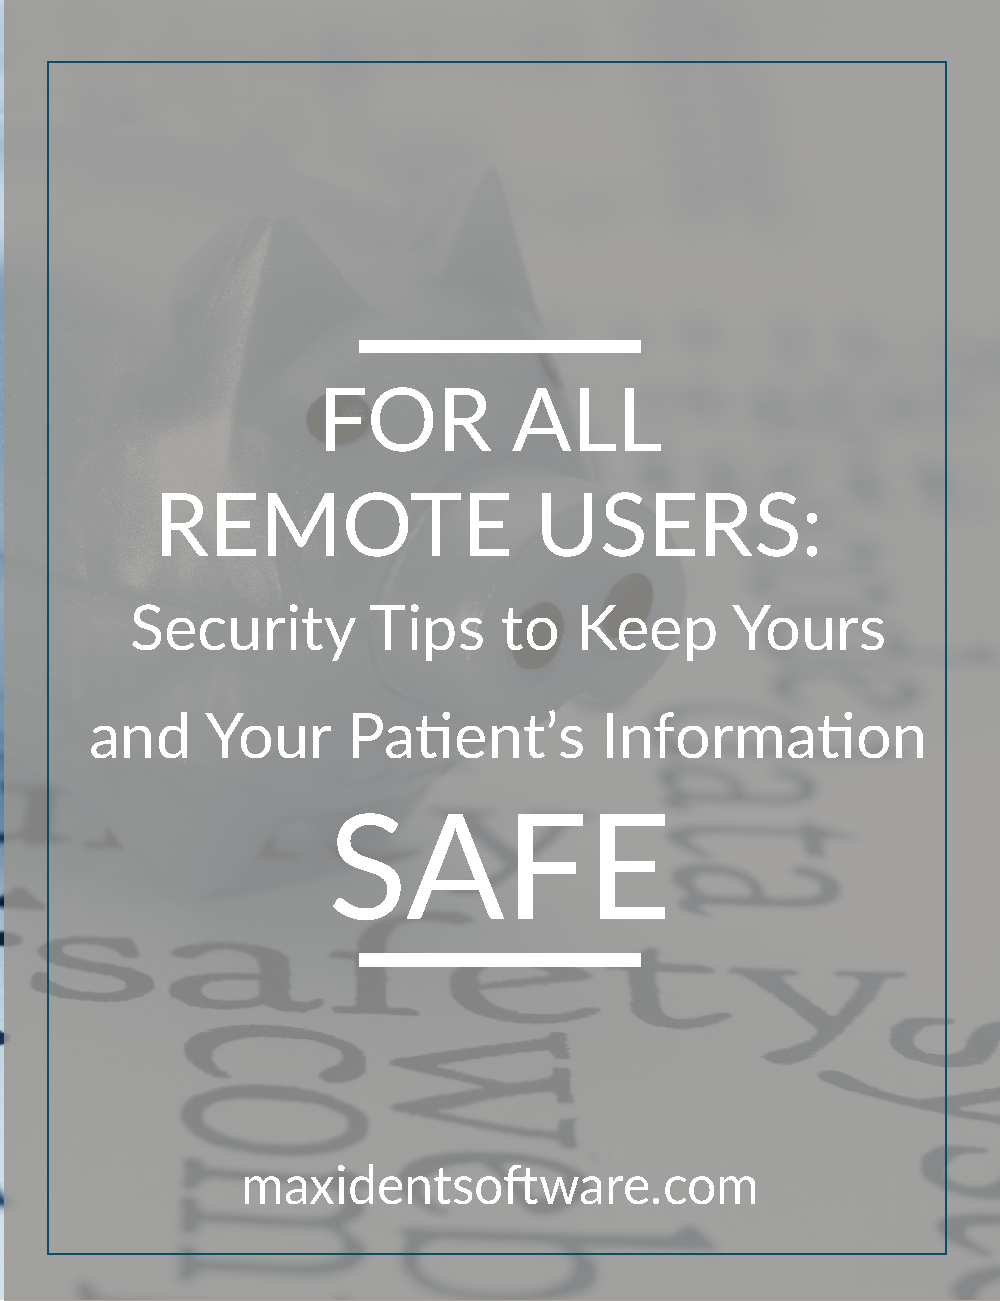 For all Remote Users: Security Tips to Keep Yours and Your Patient's Information Safe